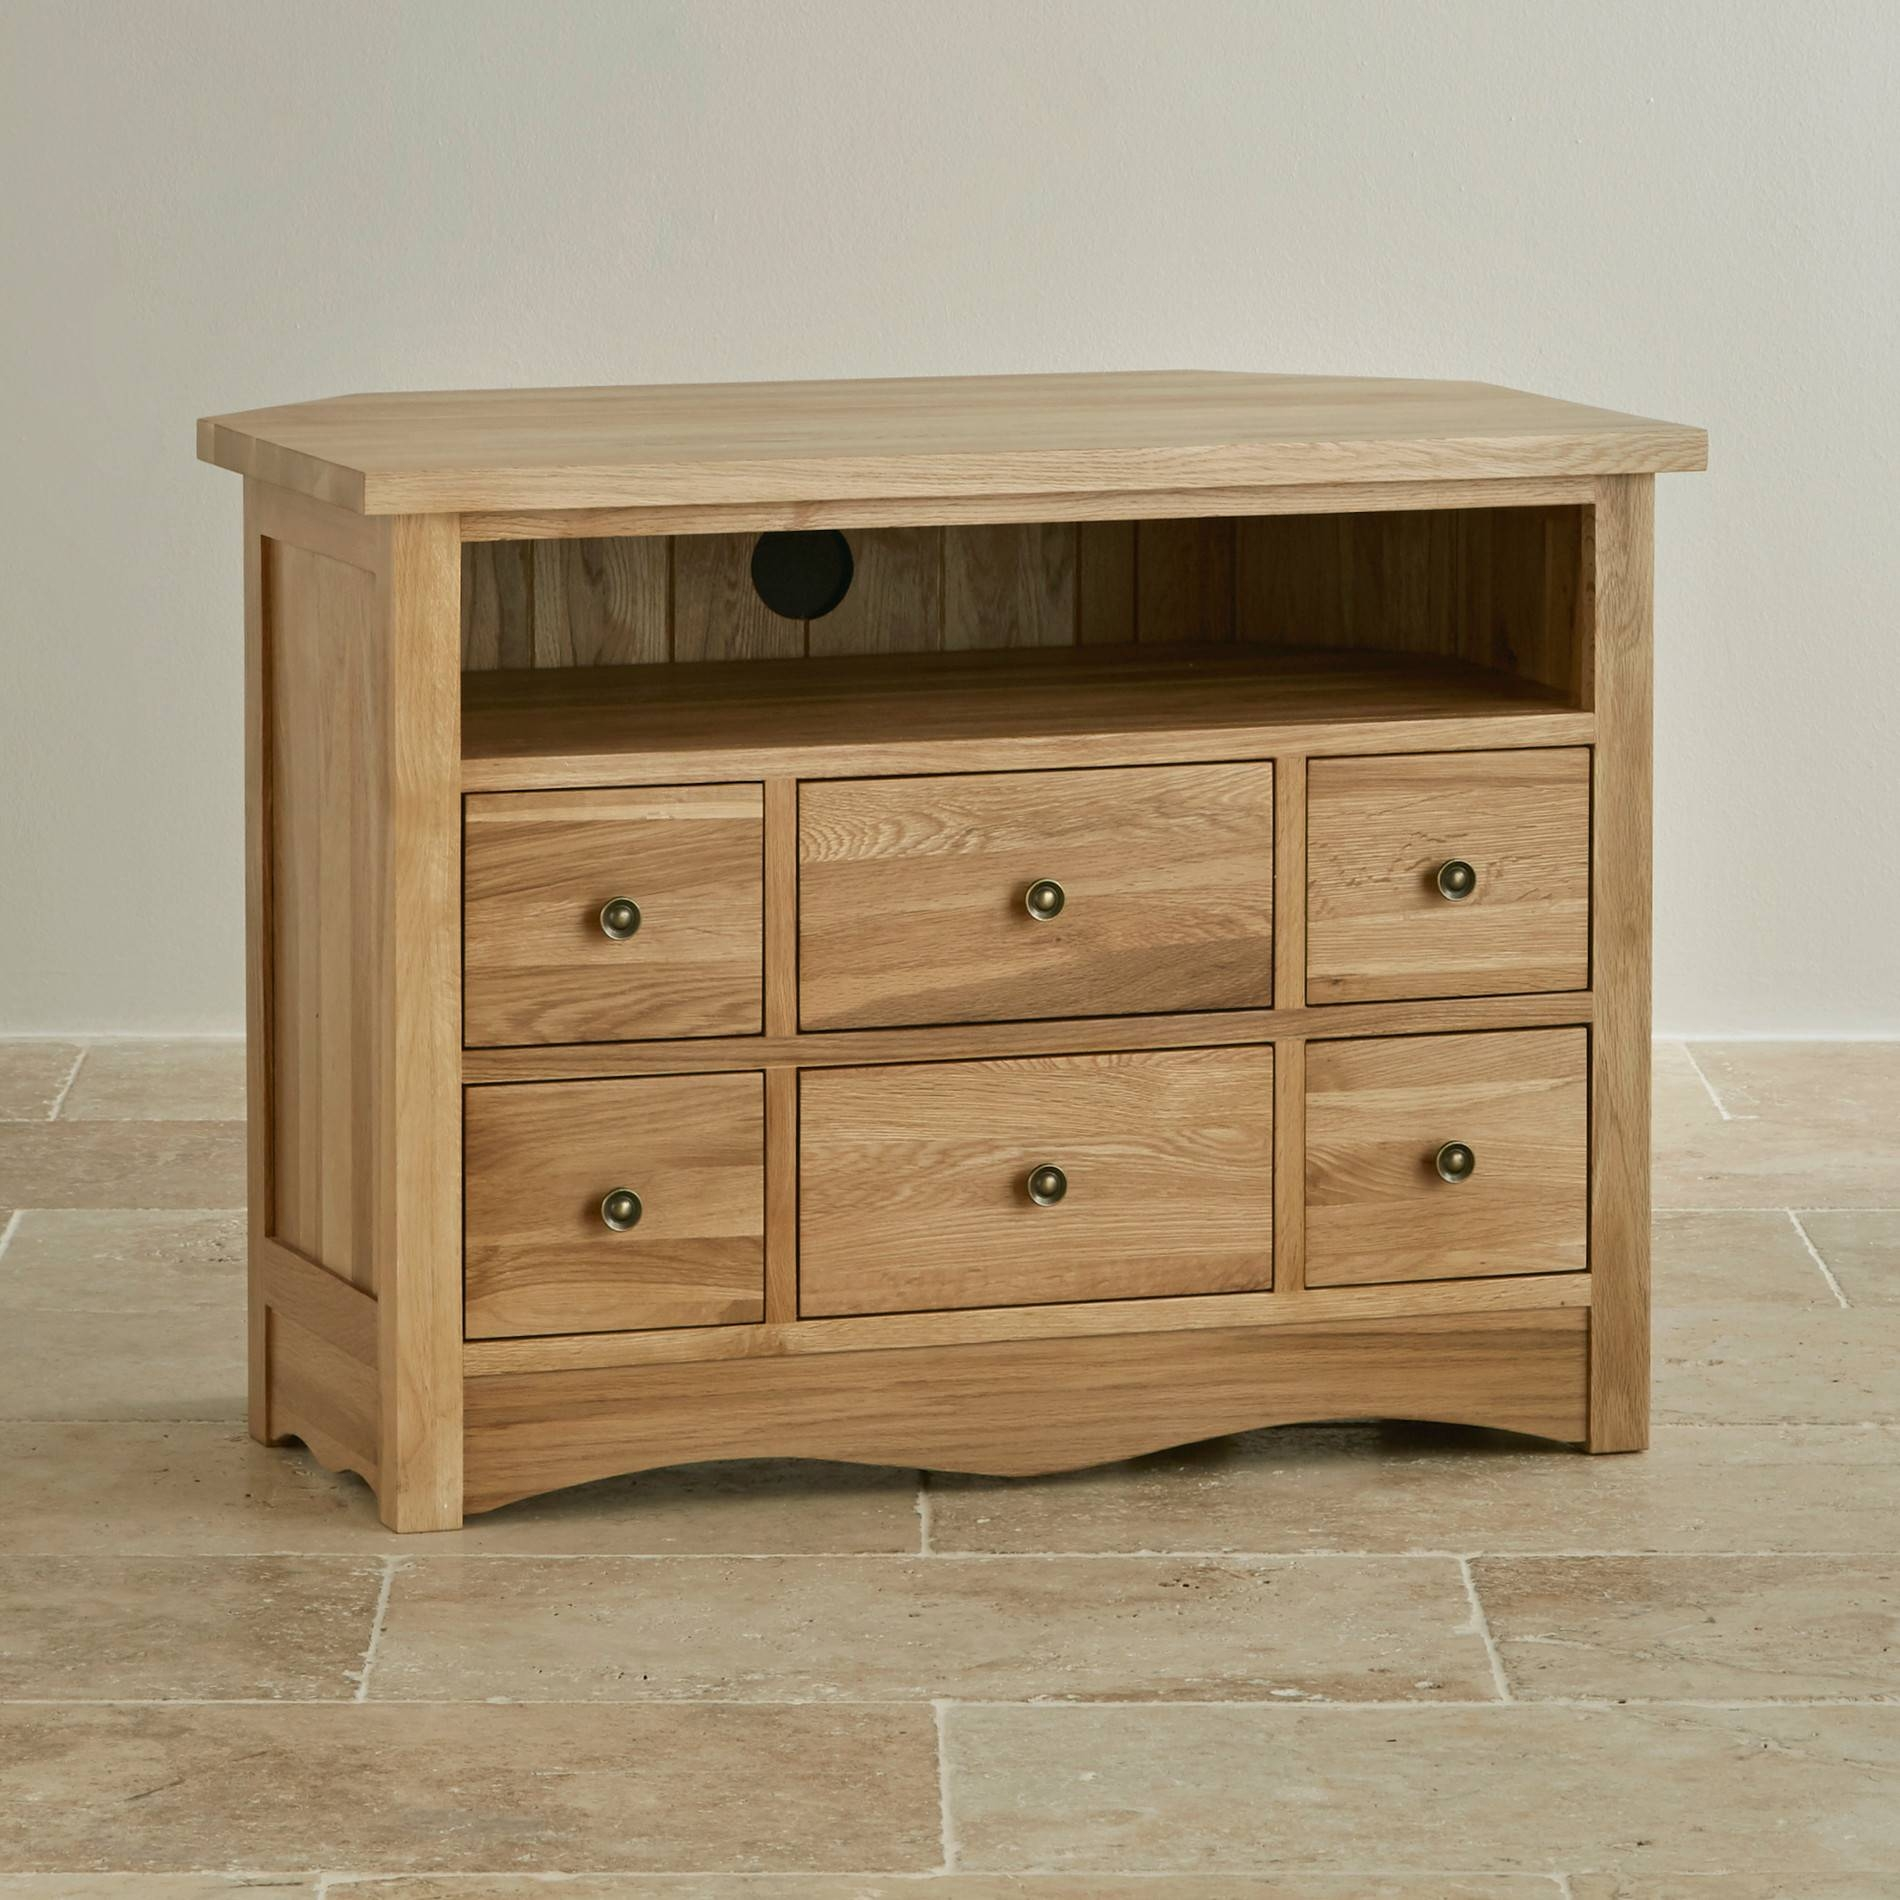 Cairo Corner Tv Cabinet In Natural Solid Oak | Oak Furniture Land in Solid Wood Corner Tv Cabinets (Image 2 of 15)